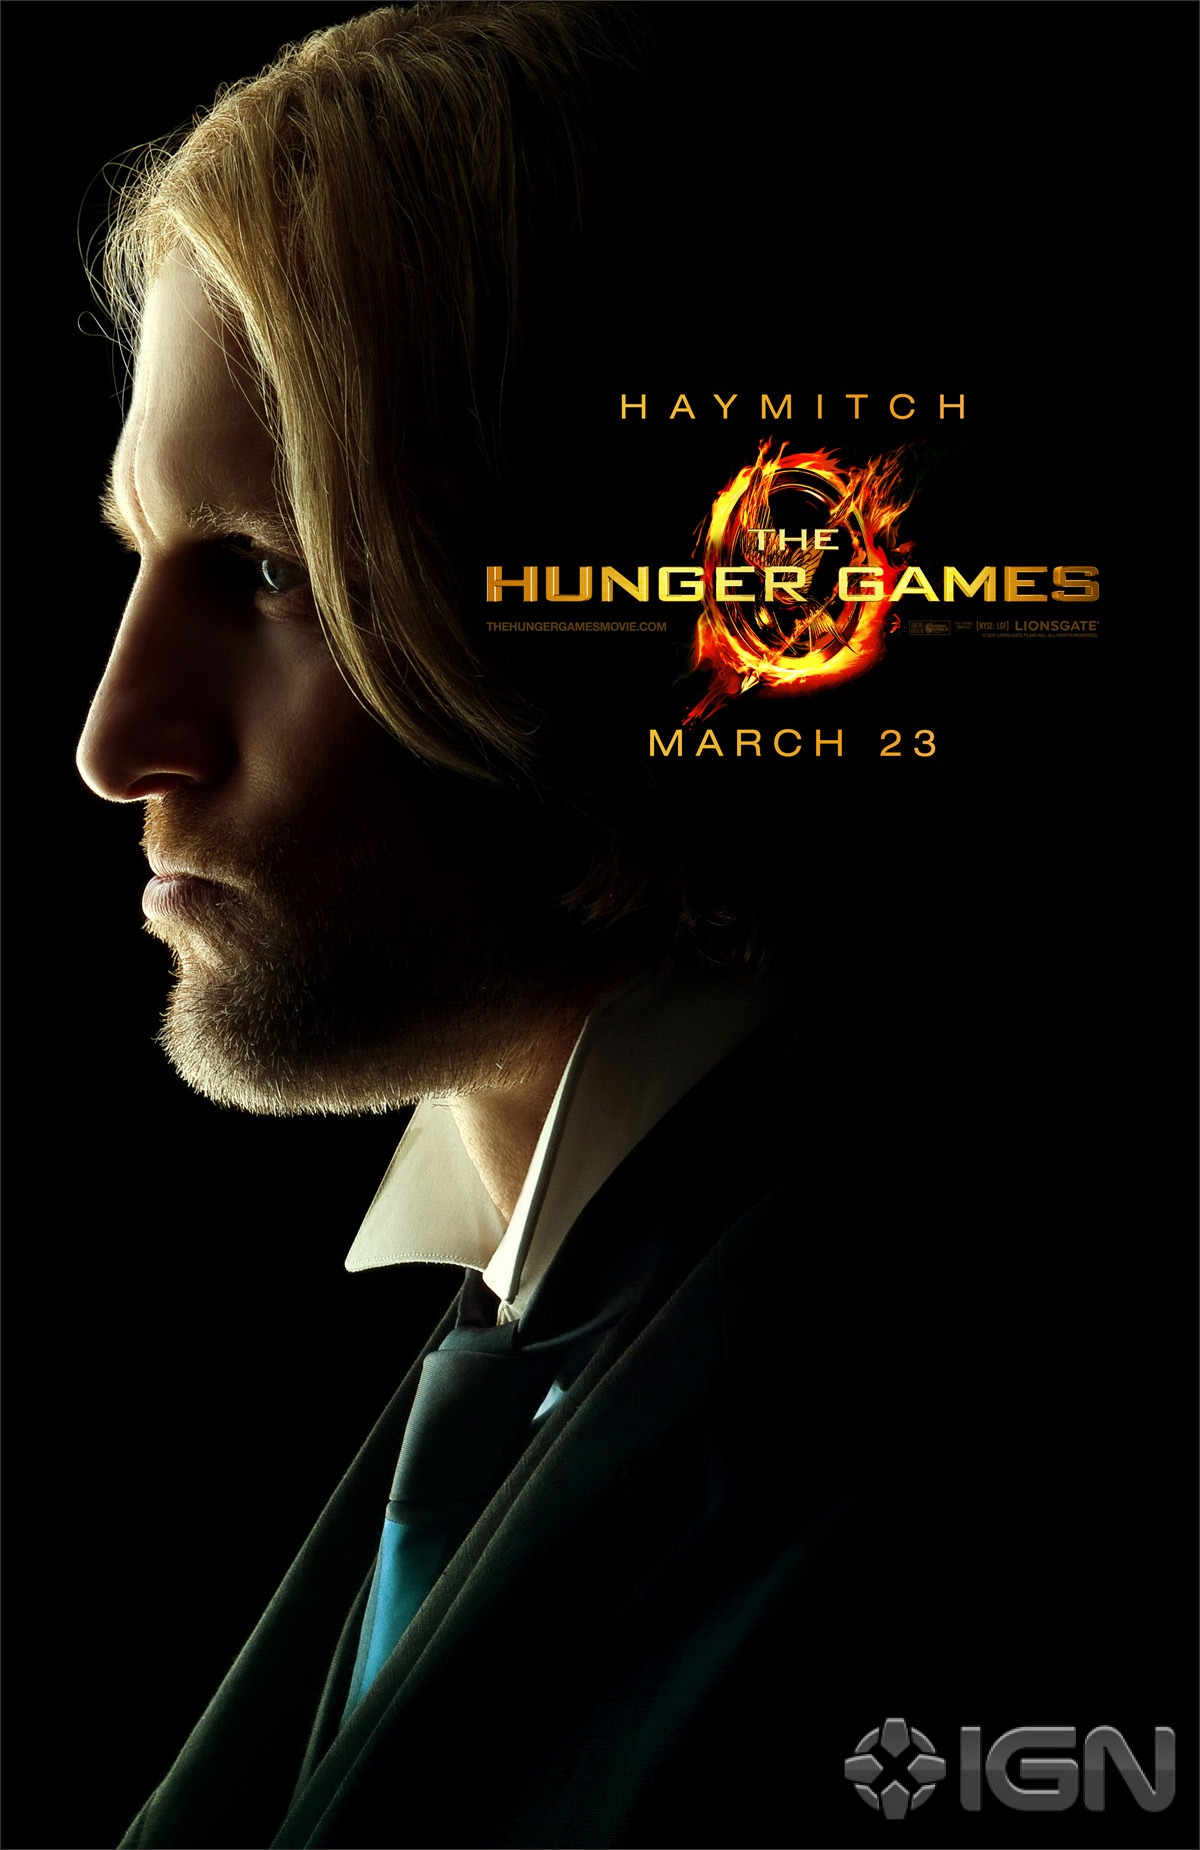 Does Haymitch die in The Hunger Games? - Answers